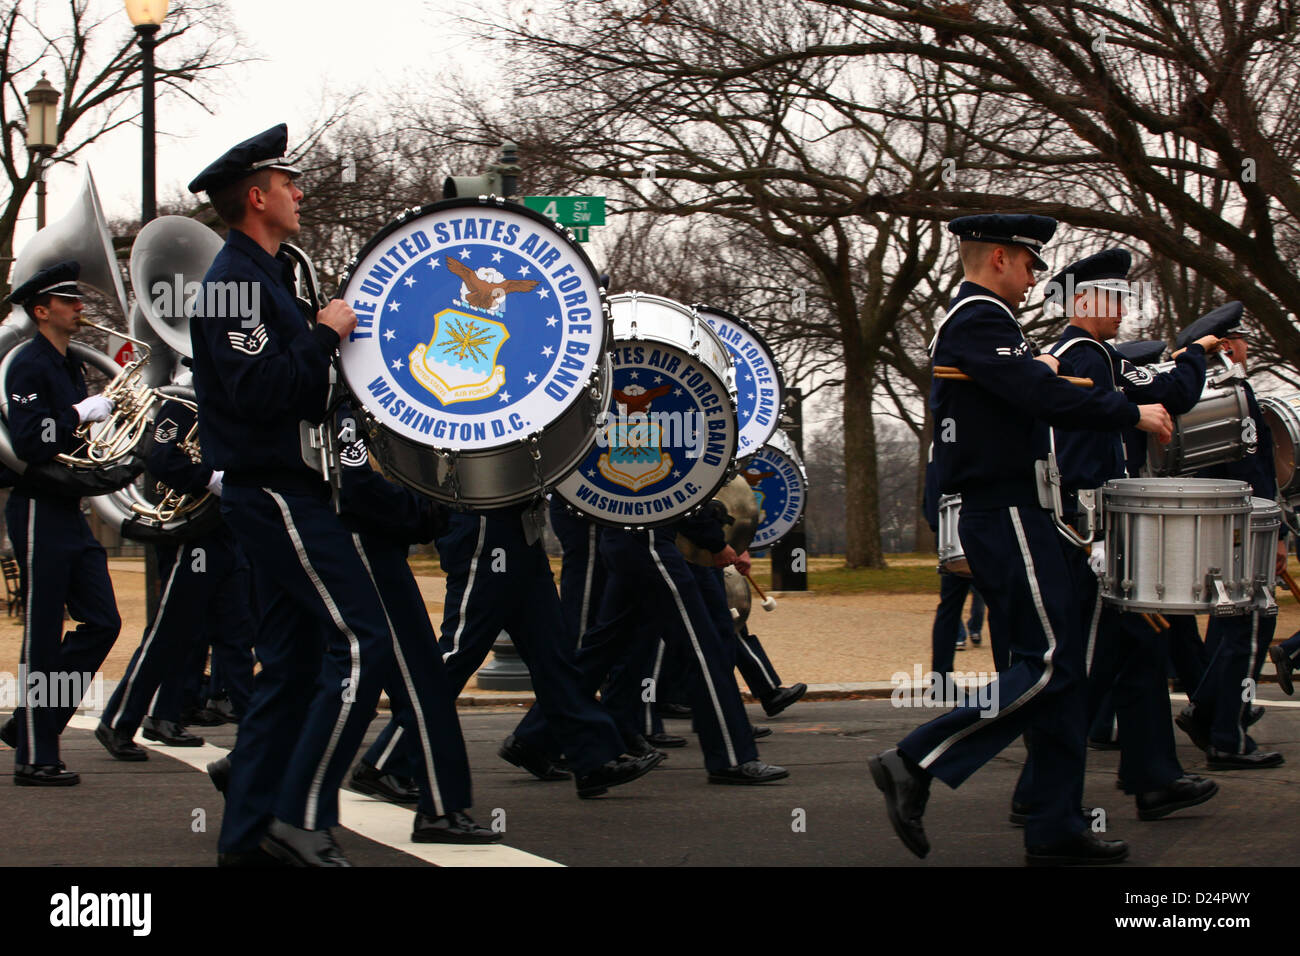 Members of the U.S. Air Force Band rehearse their movement during the dress rehearsal of the presidential inaugural Stock Photo